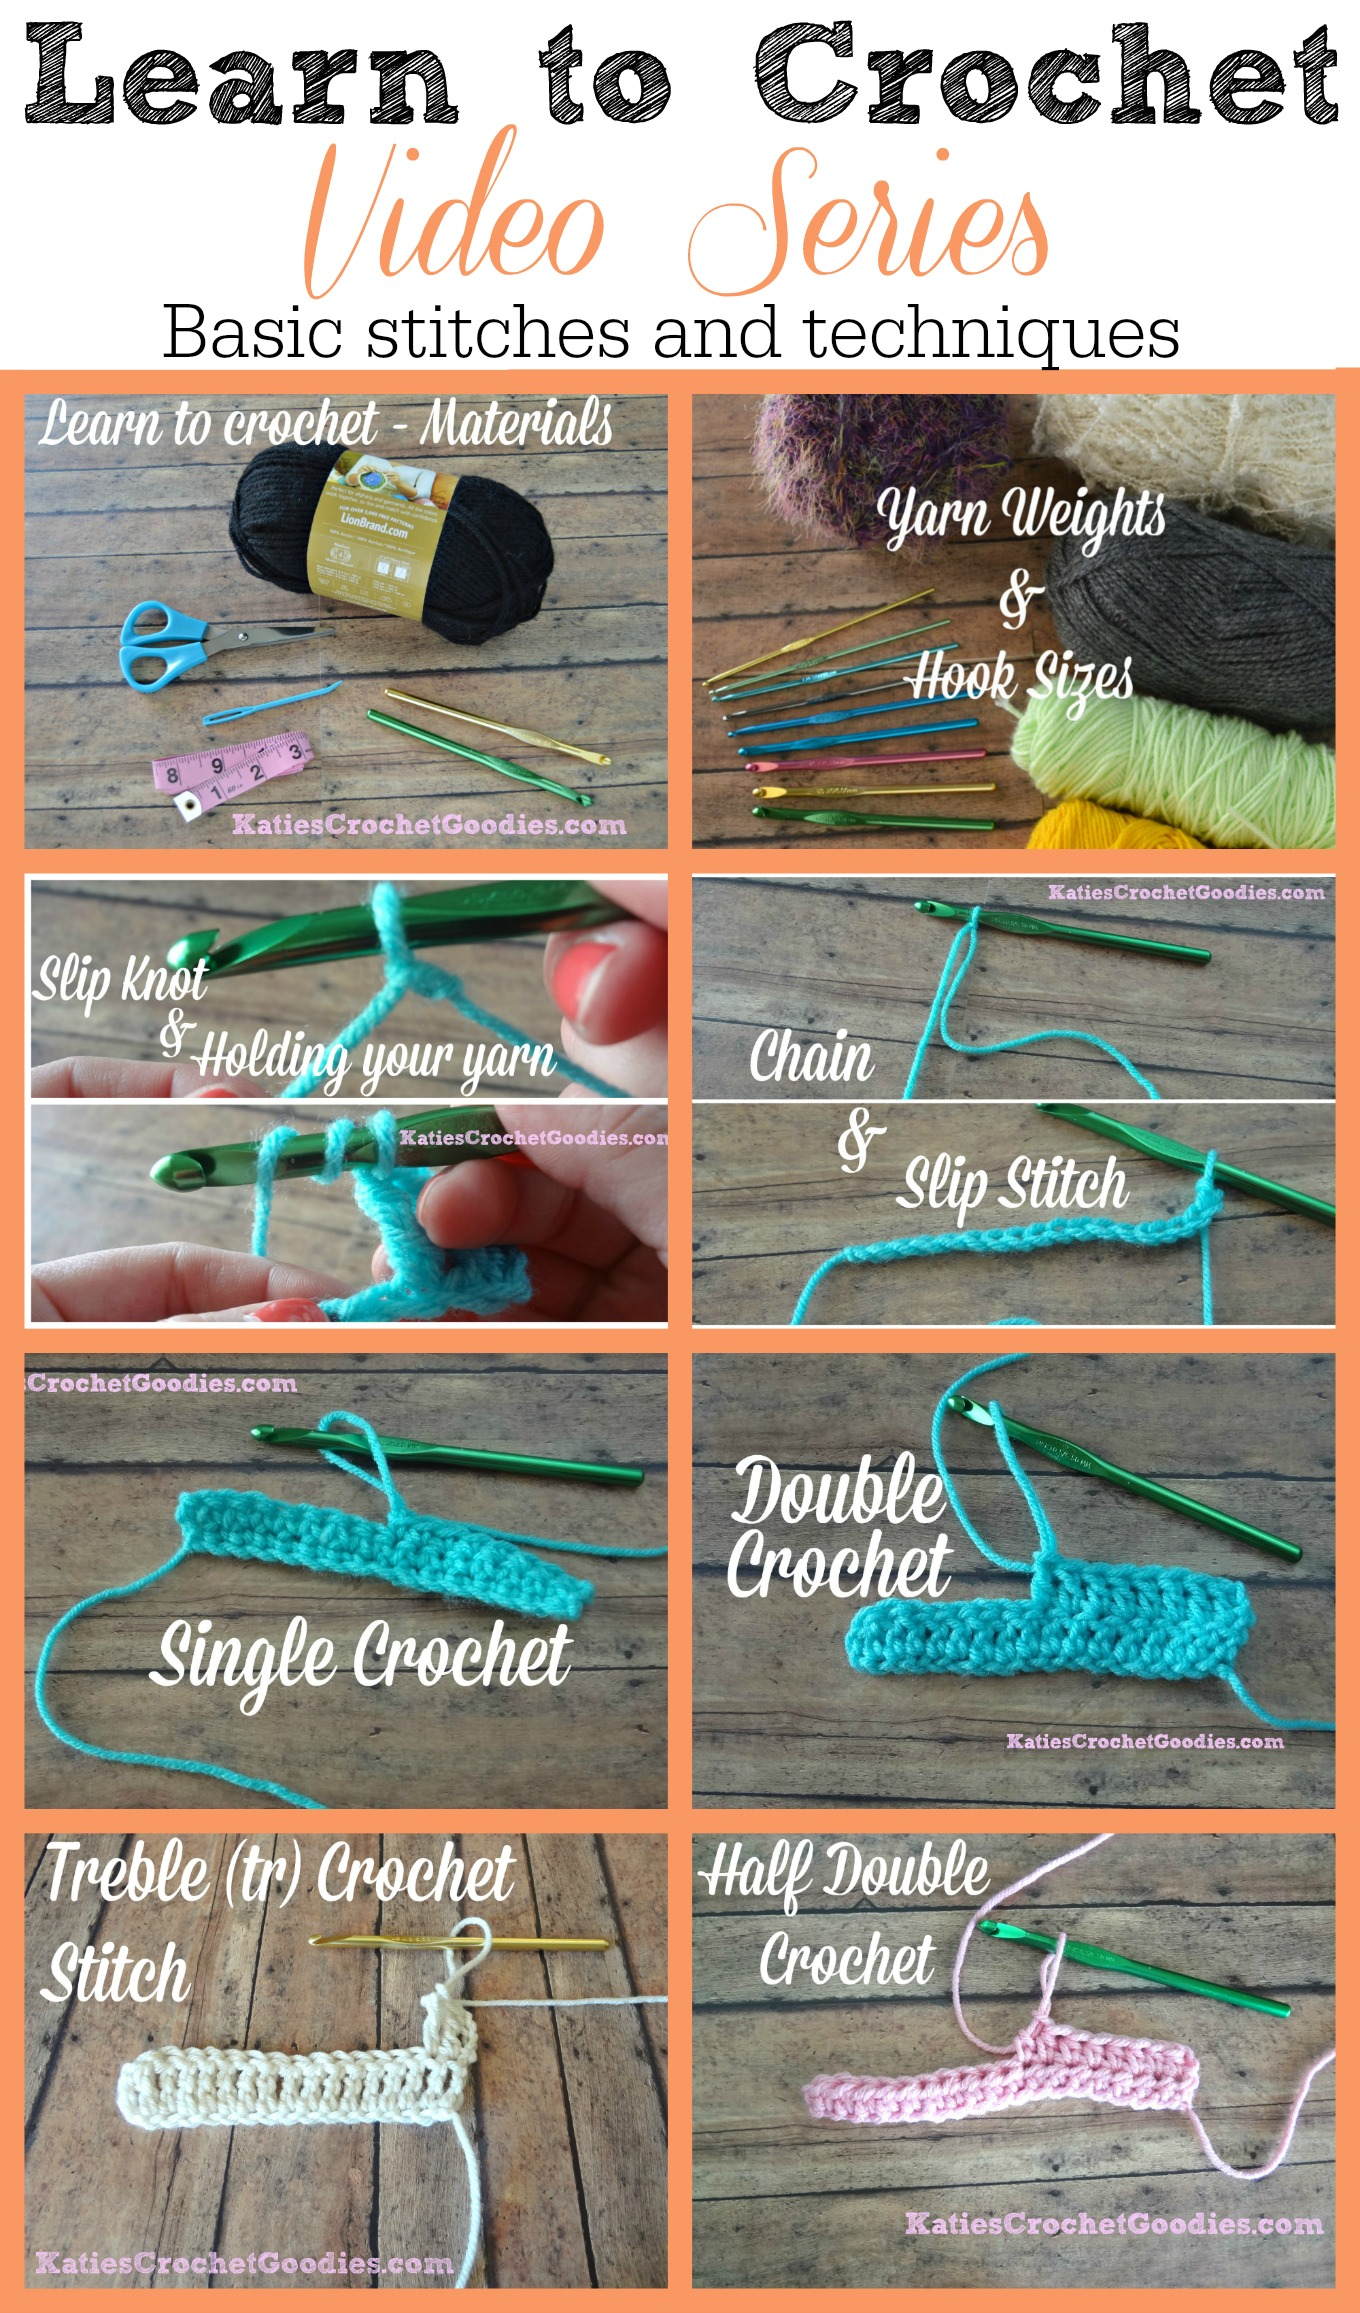 Learn to Crochet Video Series - Katies Crochet Goodies